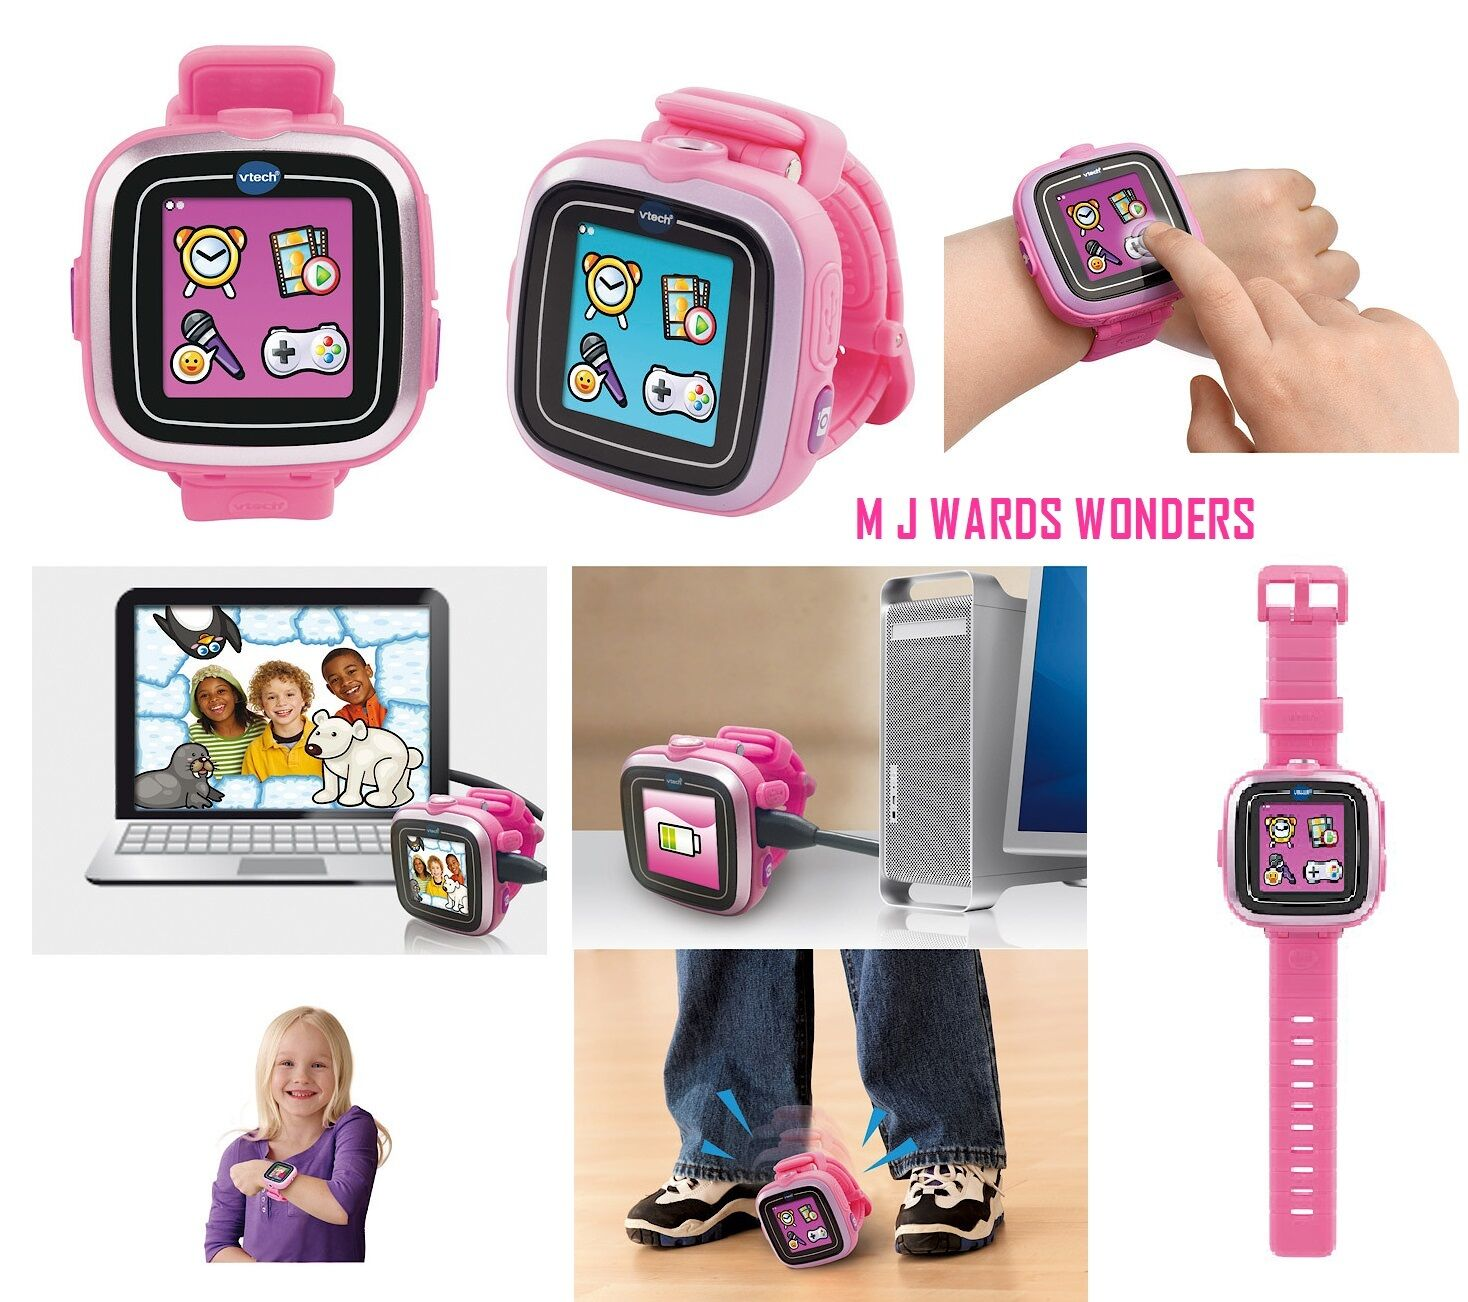 Vtech KidiZoom Smart Watch Pink Kids Girl Electronic Toy Games Camera Video